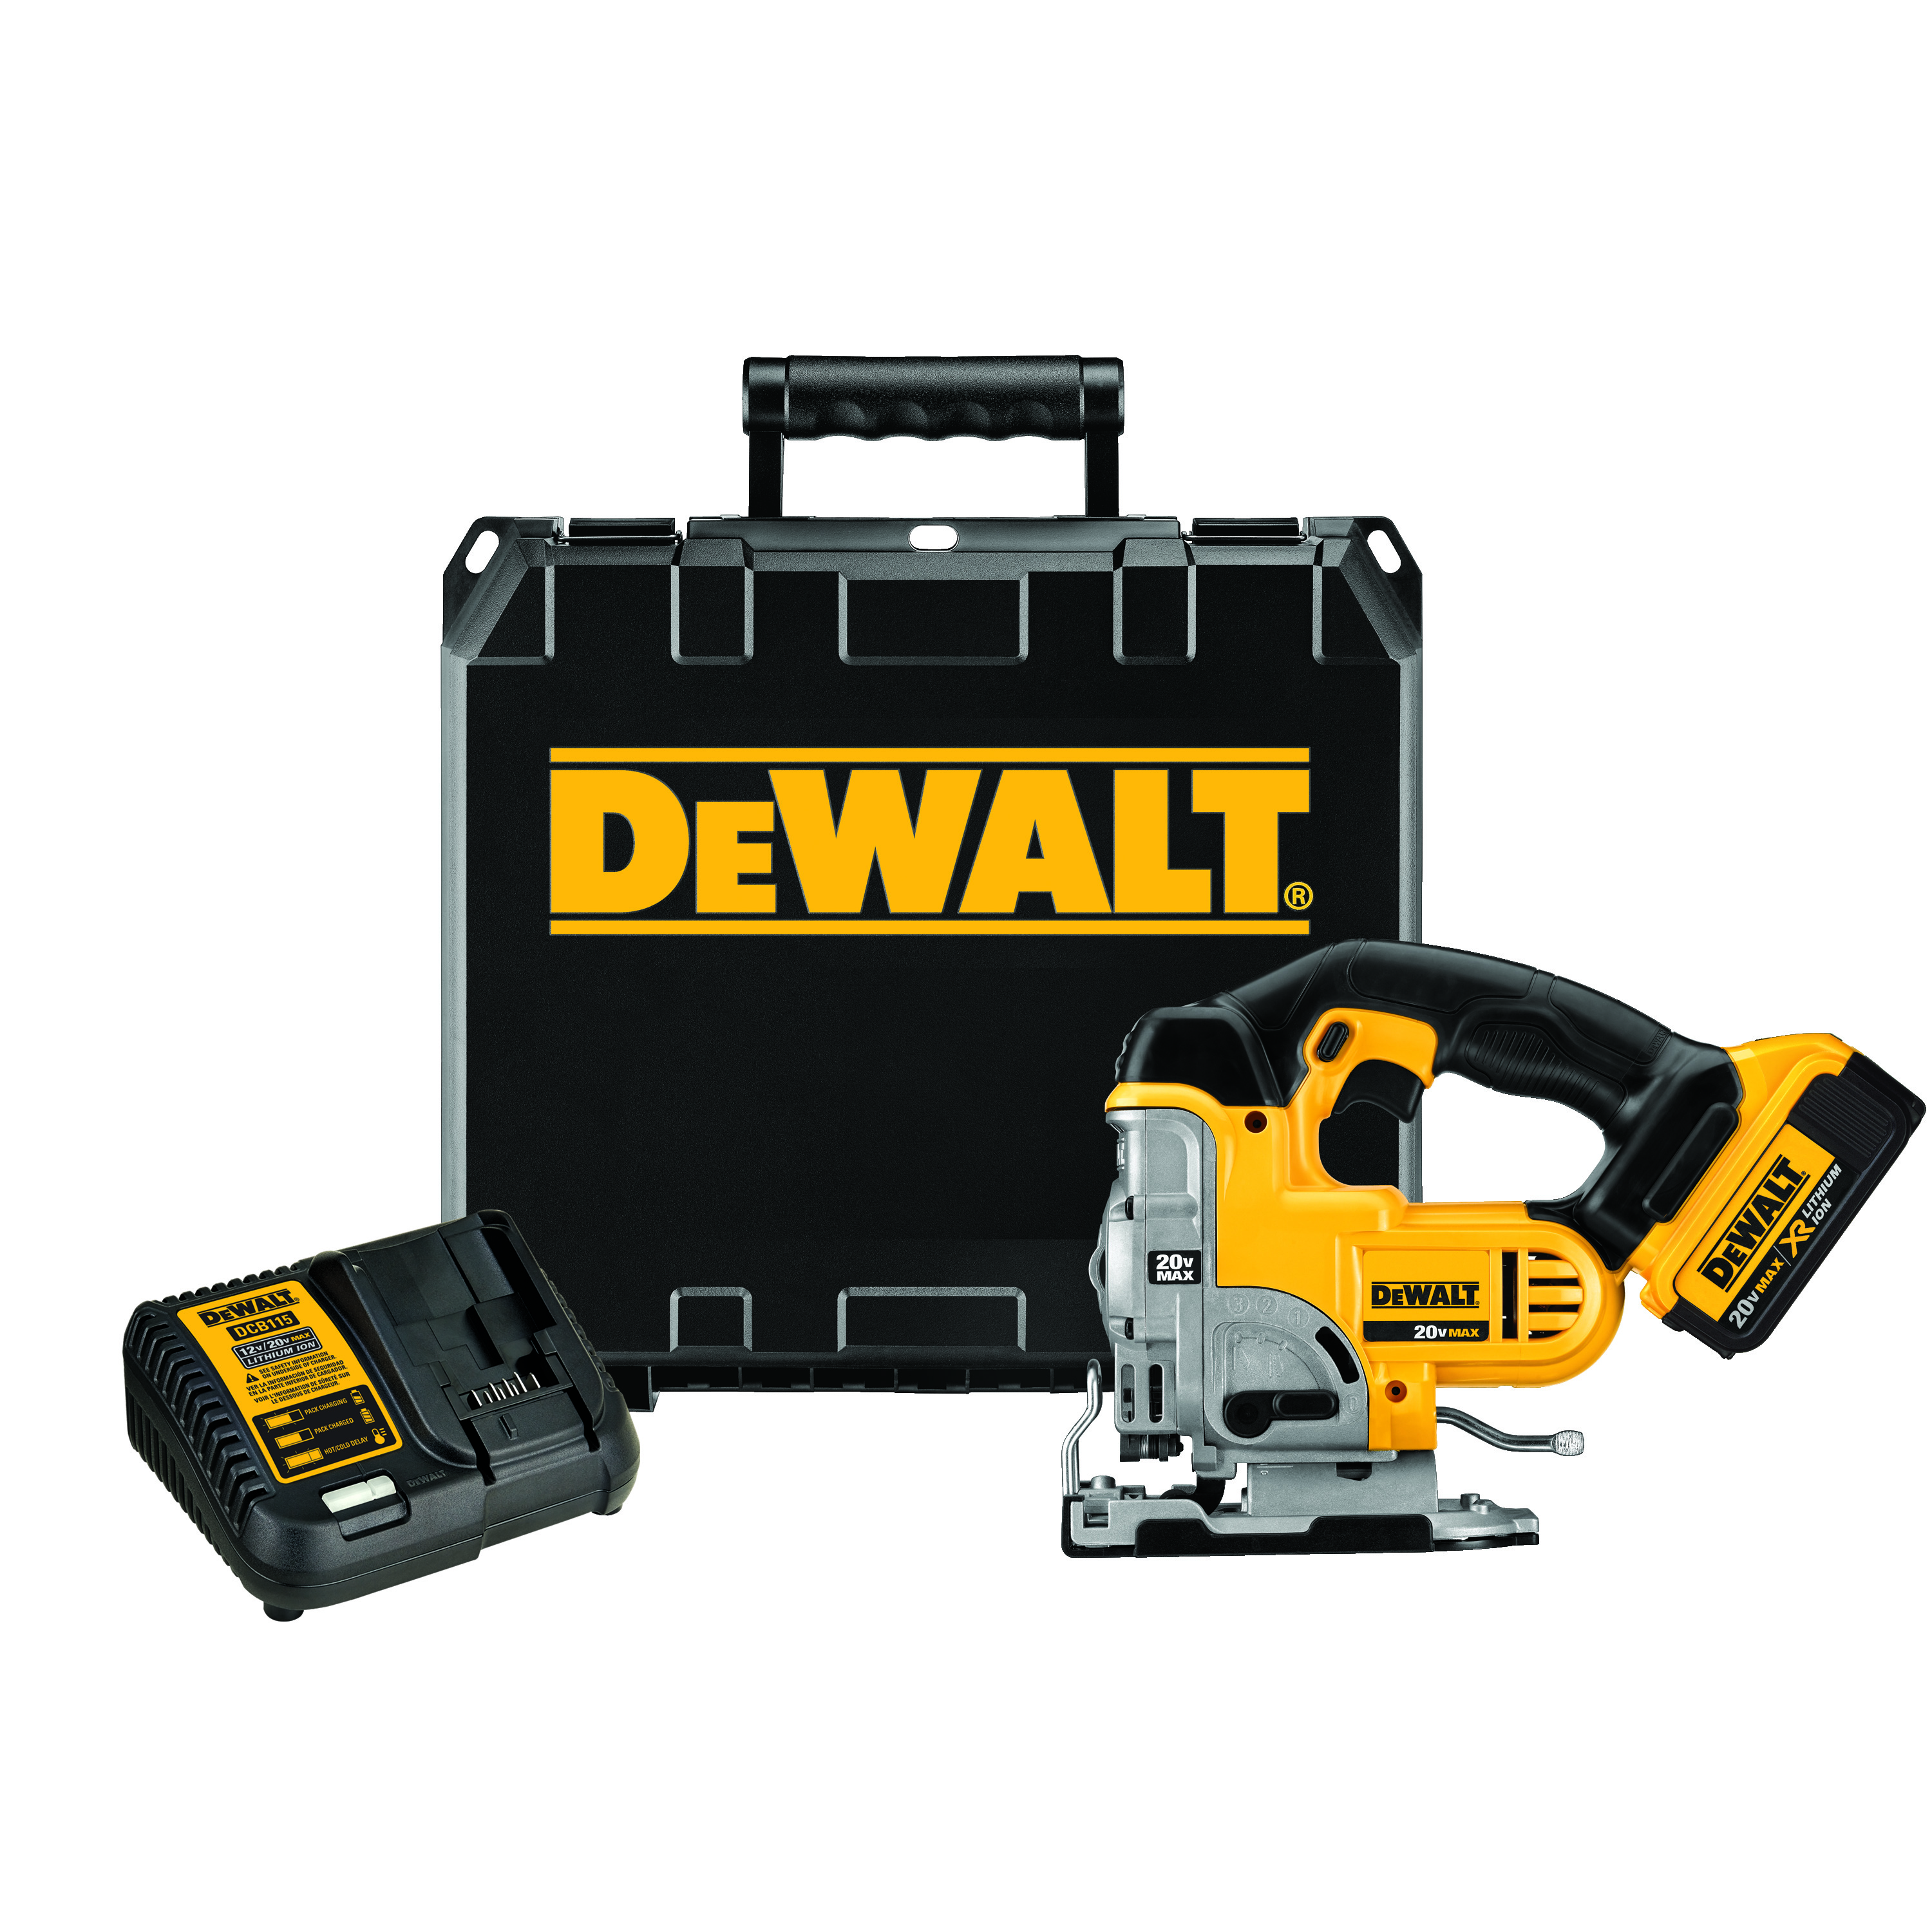 DeWALT® DCS331M1 Cordless Jig Saw Kit, 20 VDC, For Blade Shank: T-Shank, 12 in OAL, Lithium-Ion Battery